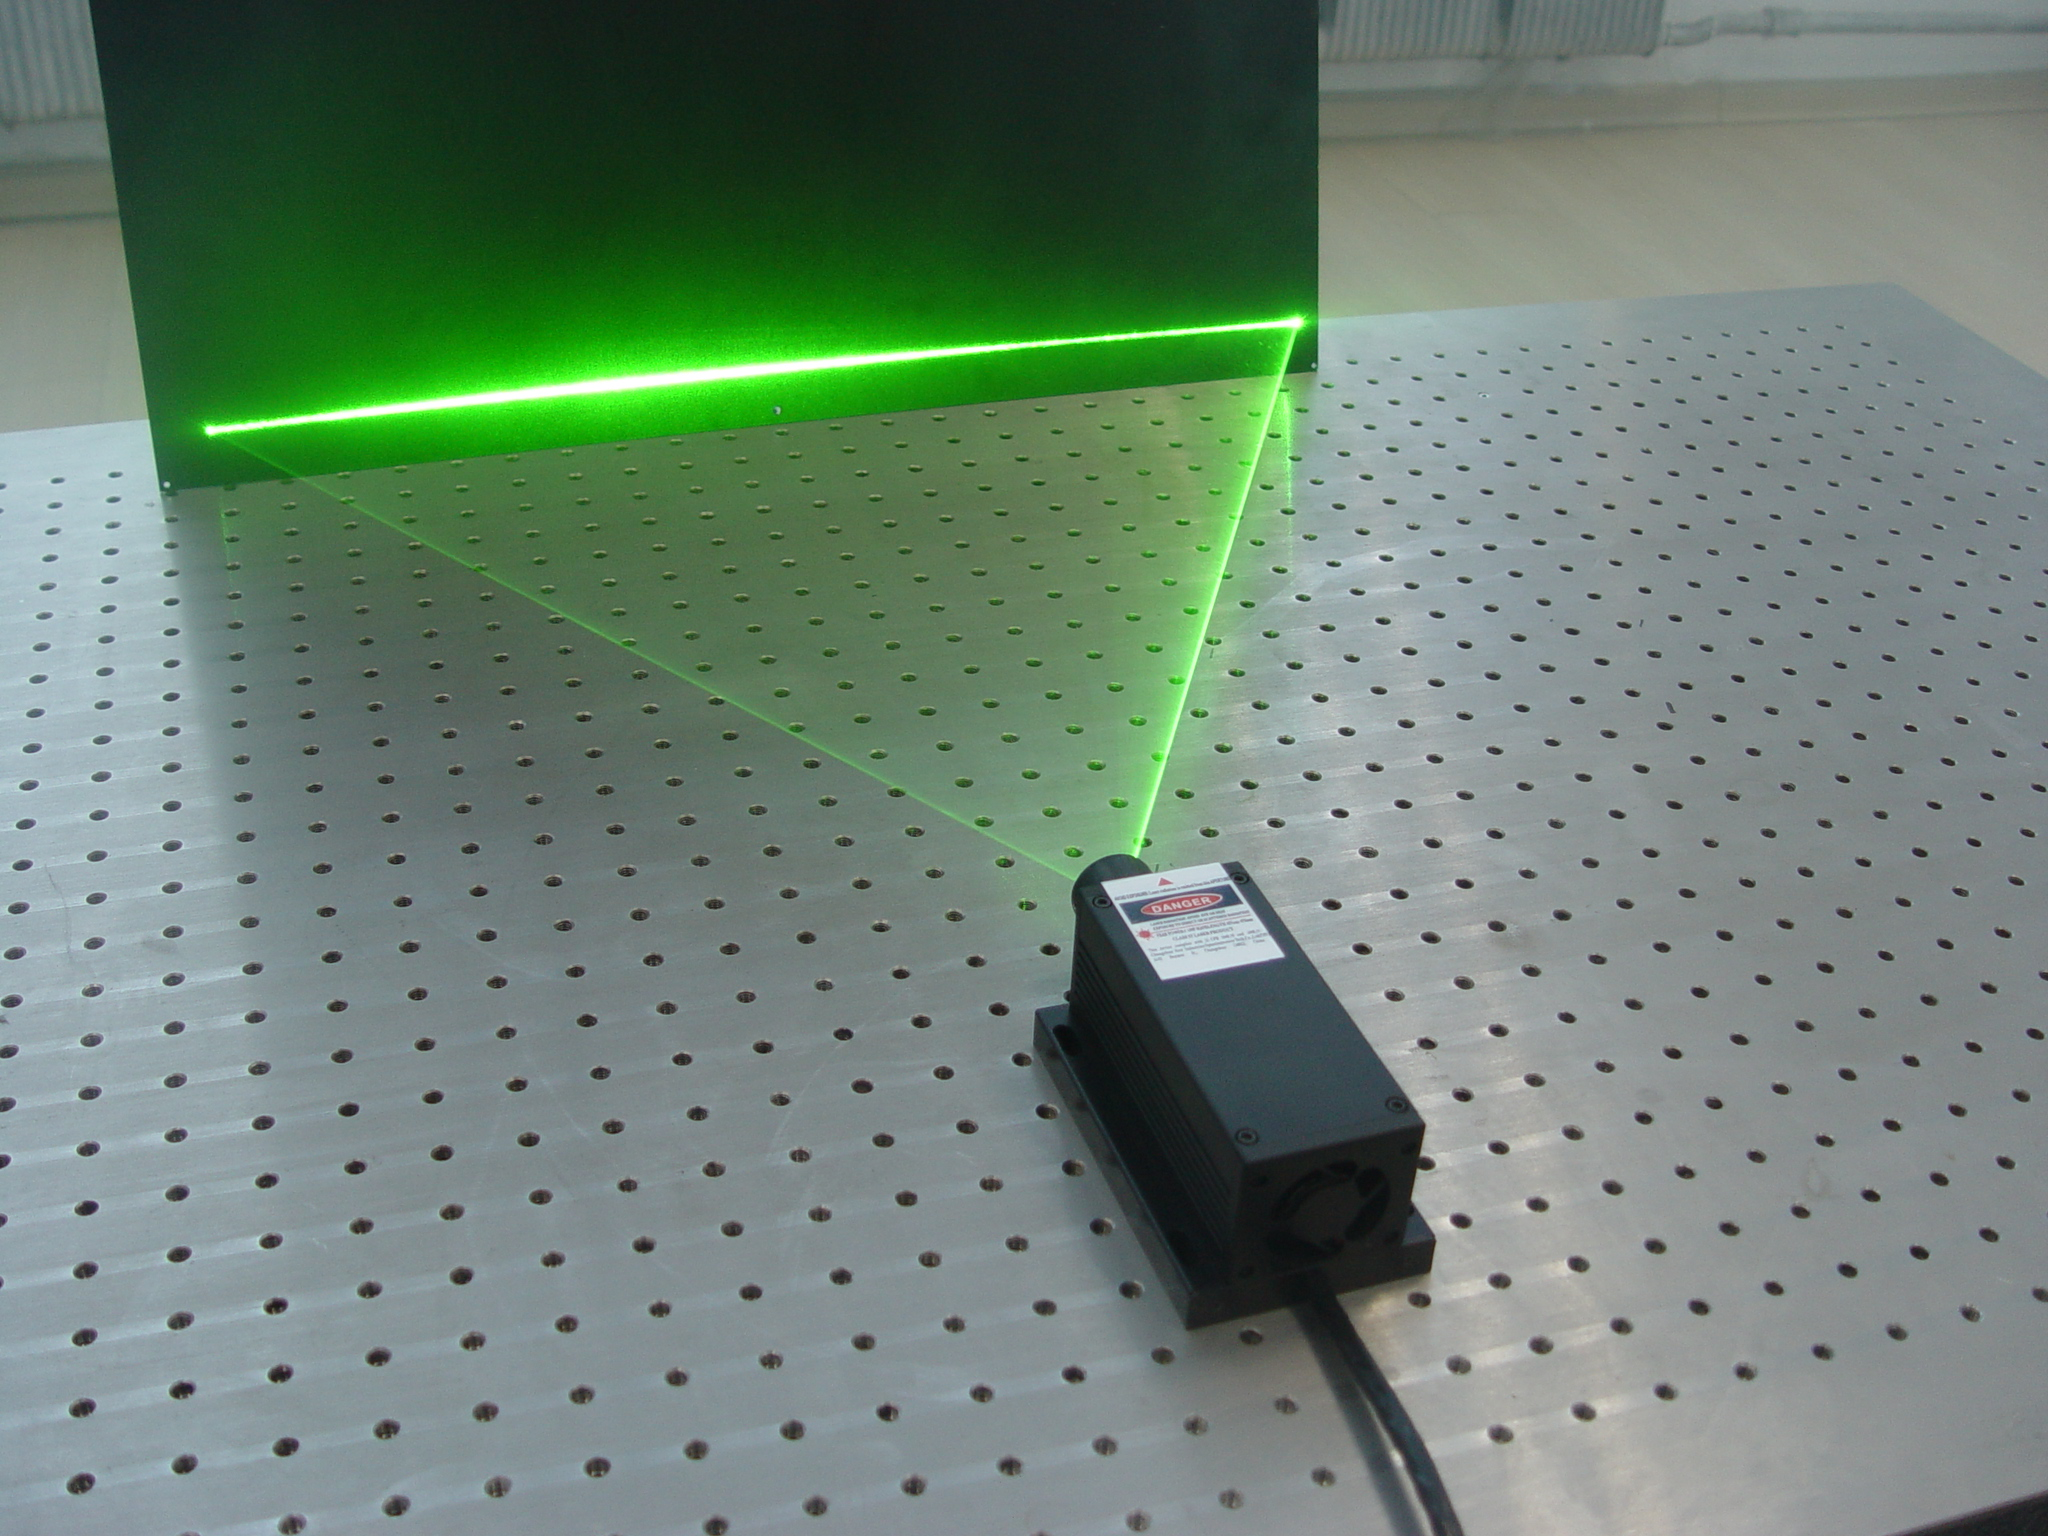 CNI high stability line laser